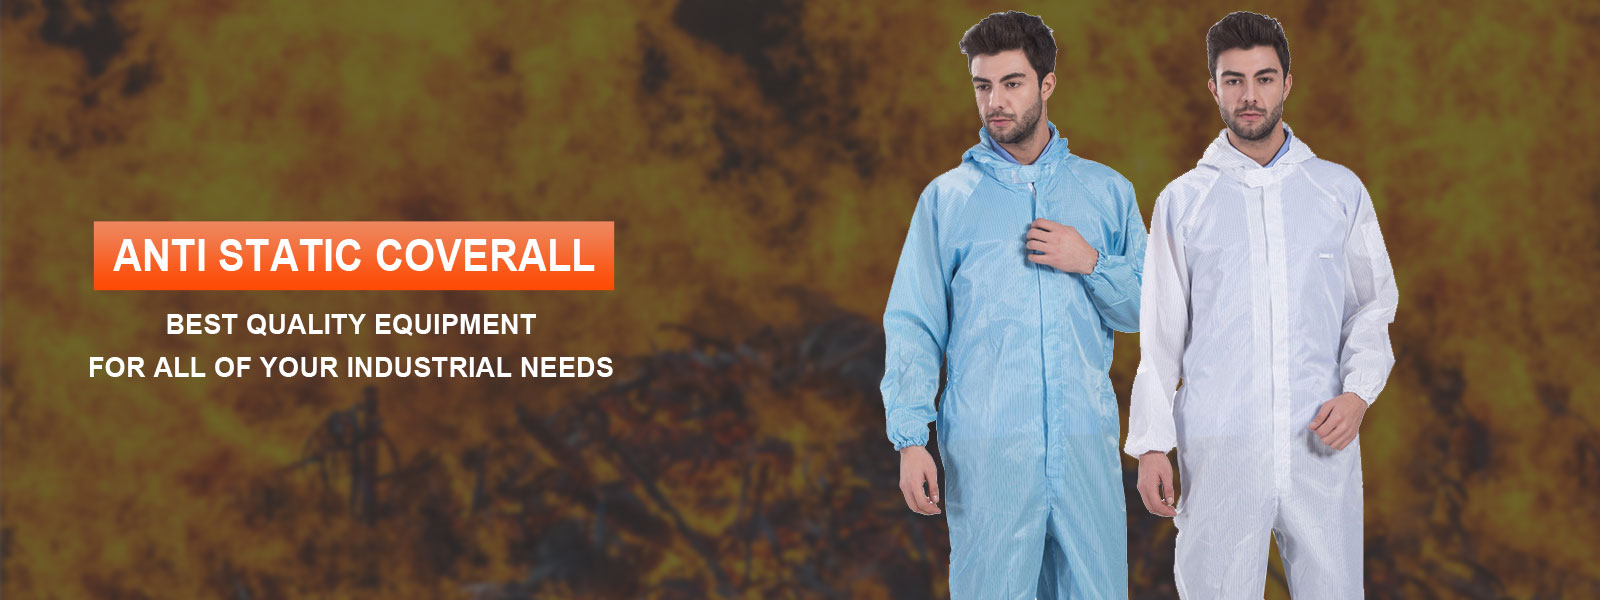 Anti Static Coverall Manufacturers in Hyderabad